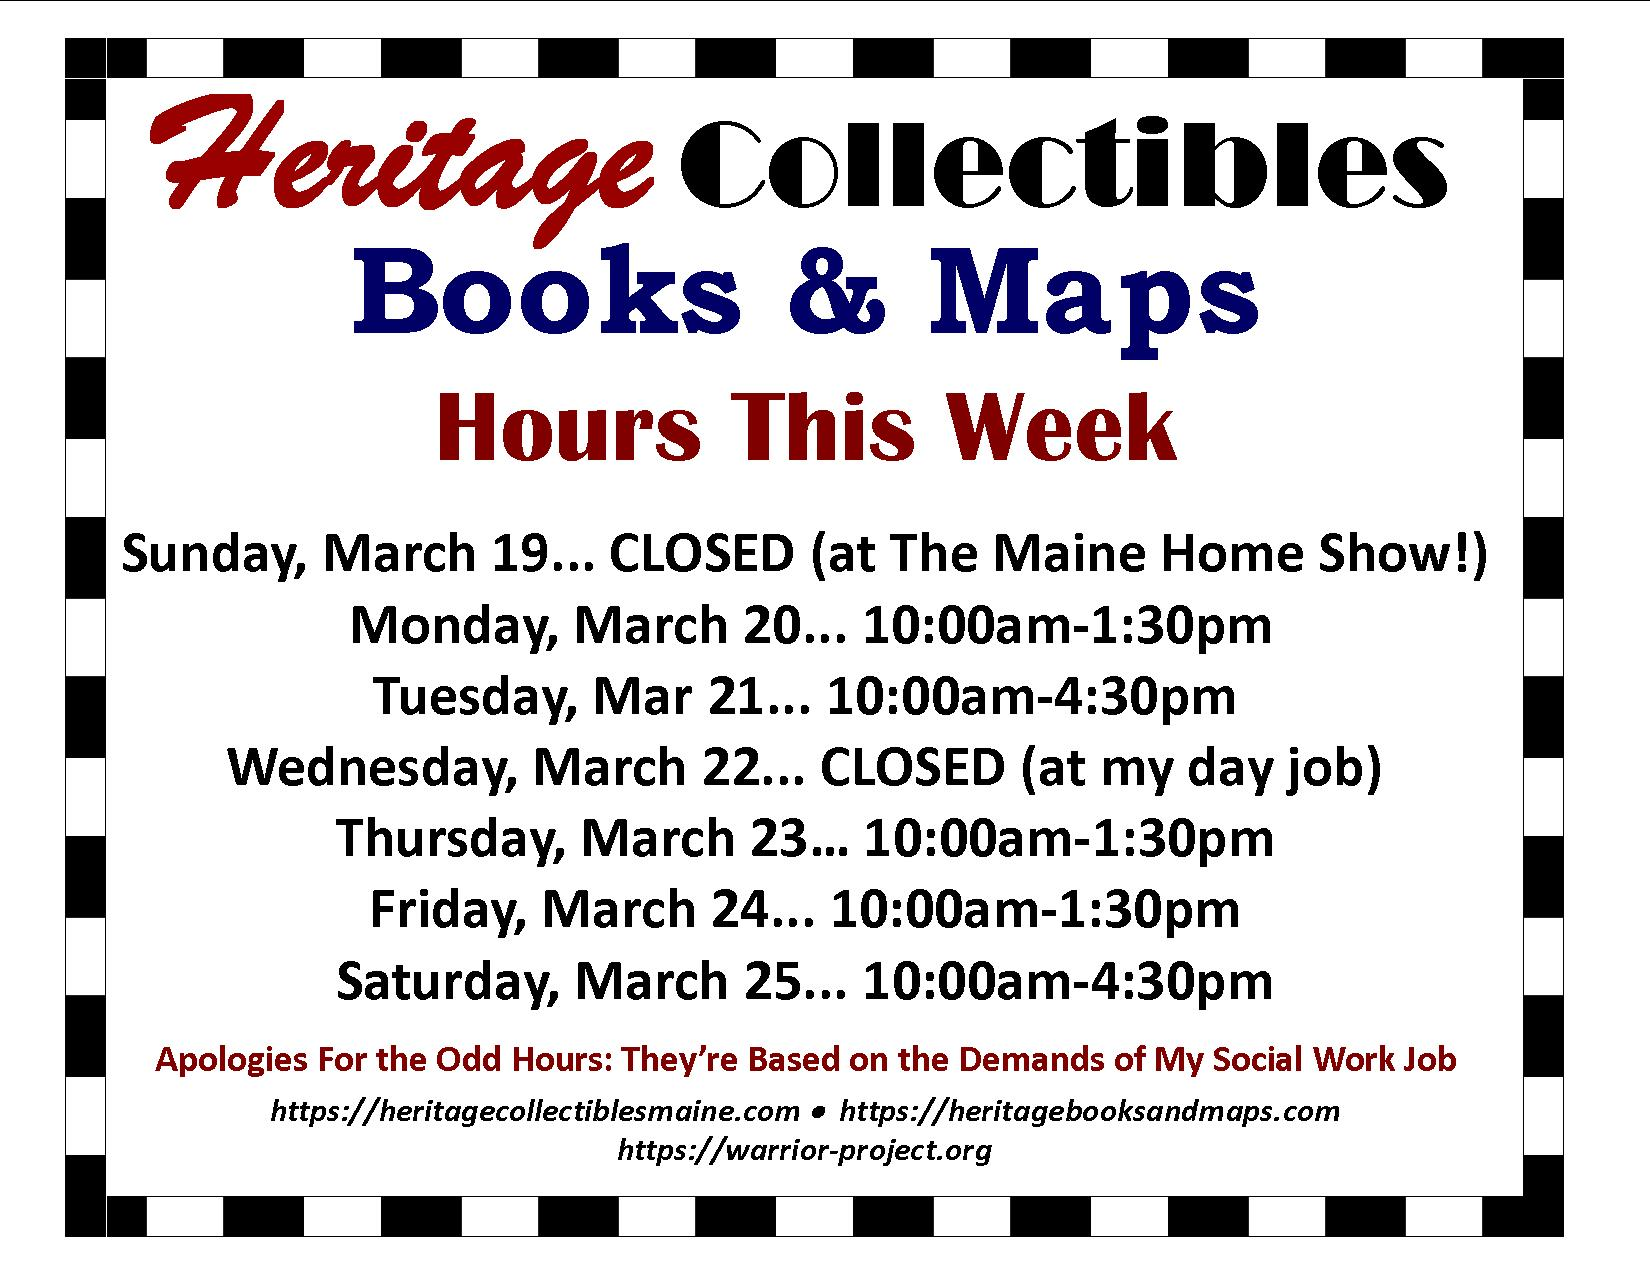 Hours for the Week of 03/19-03/25, 2017